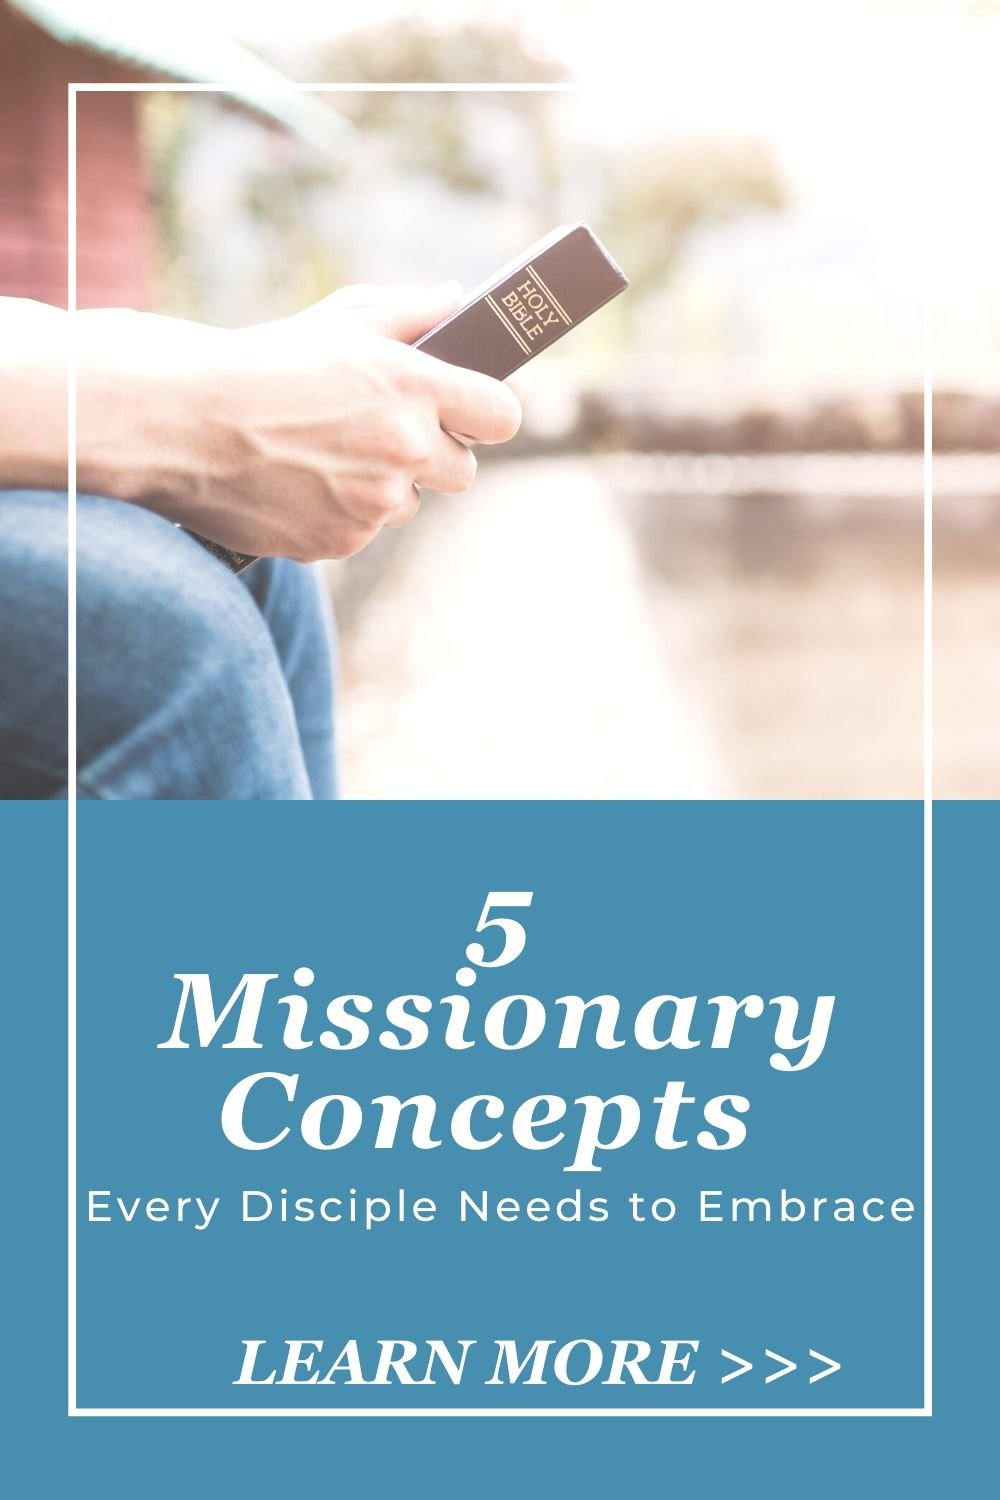 5 Missionary Concepts Every Disciple Needs to Embrace - with Transforming Mission